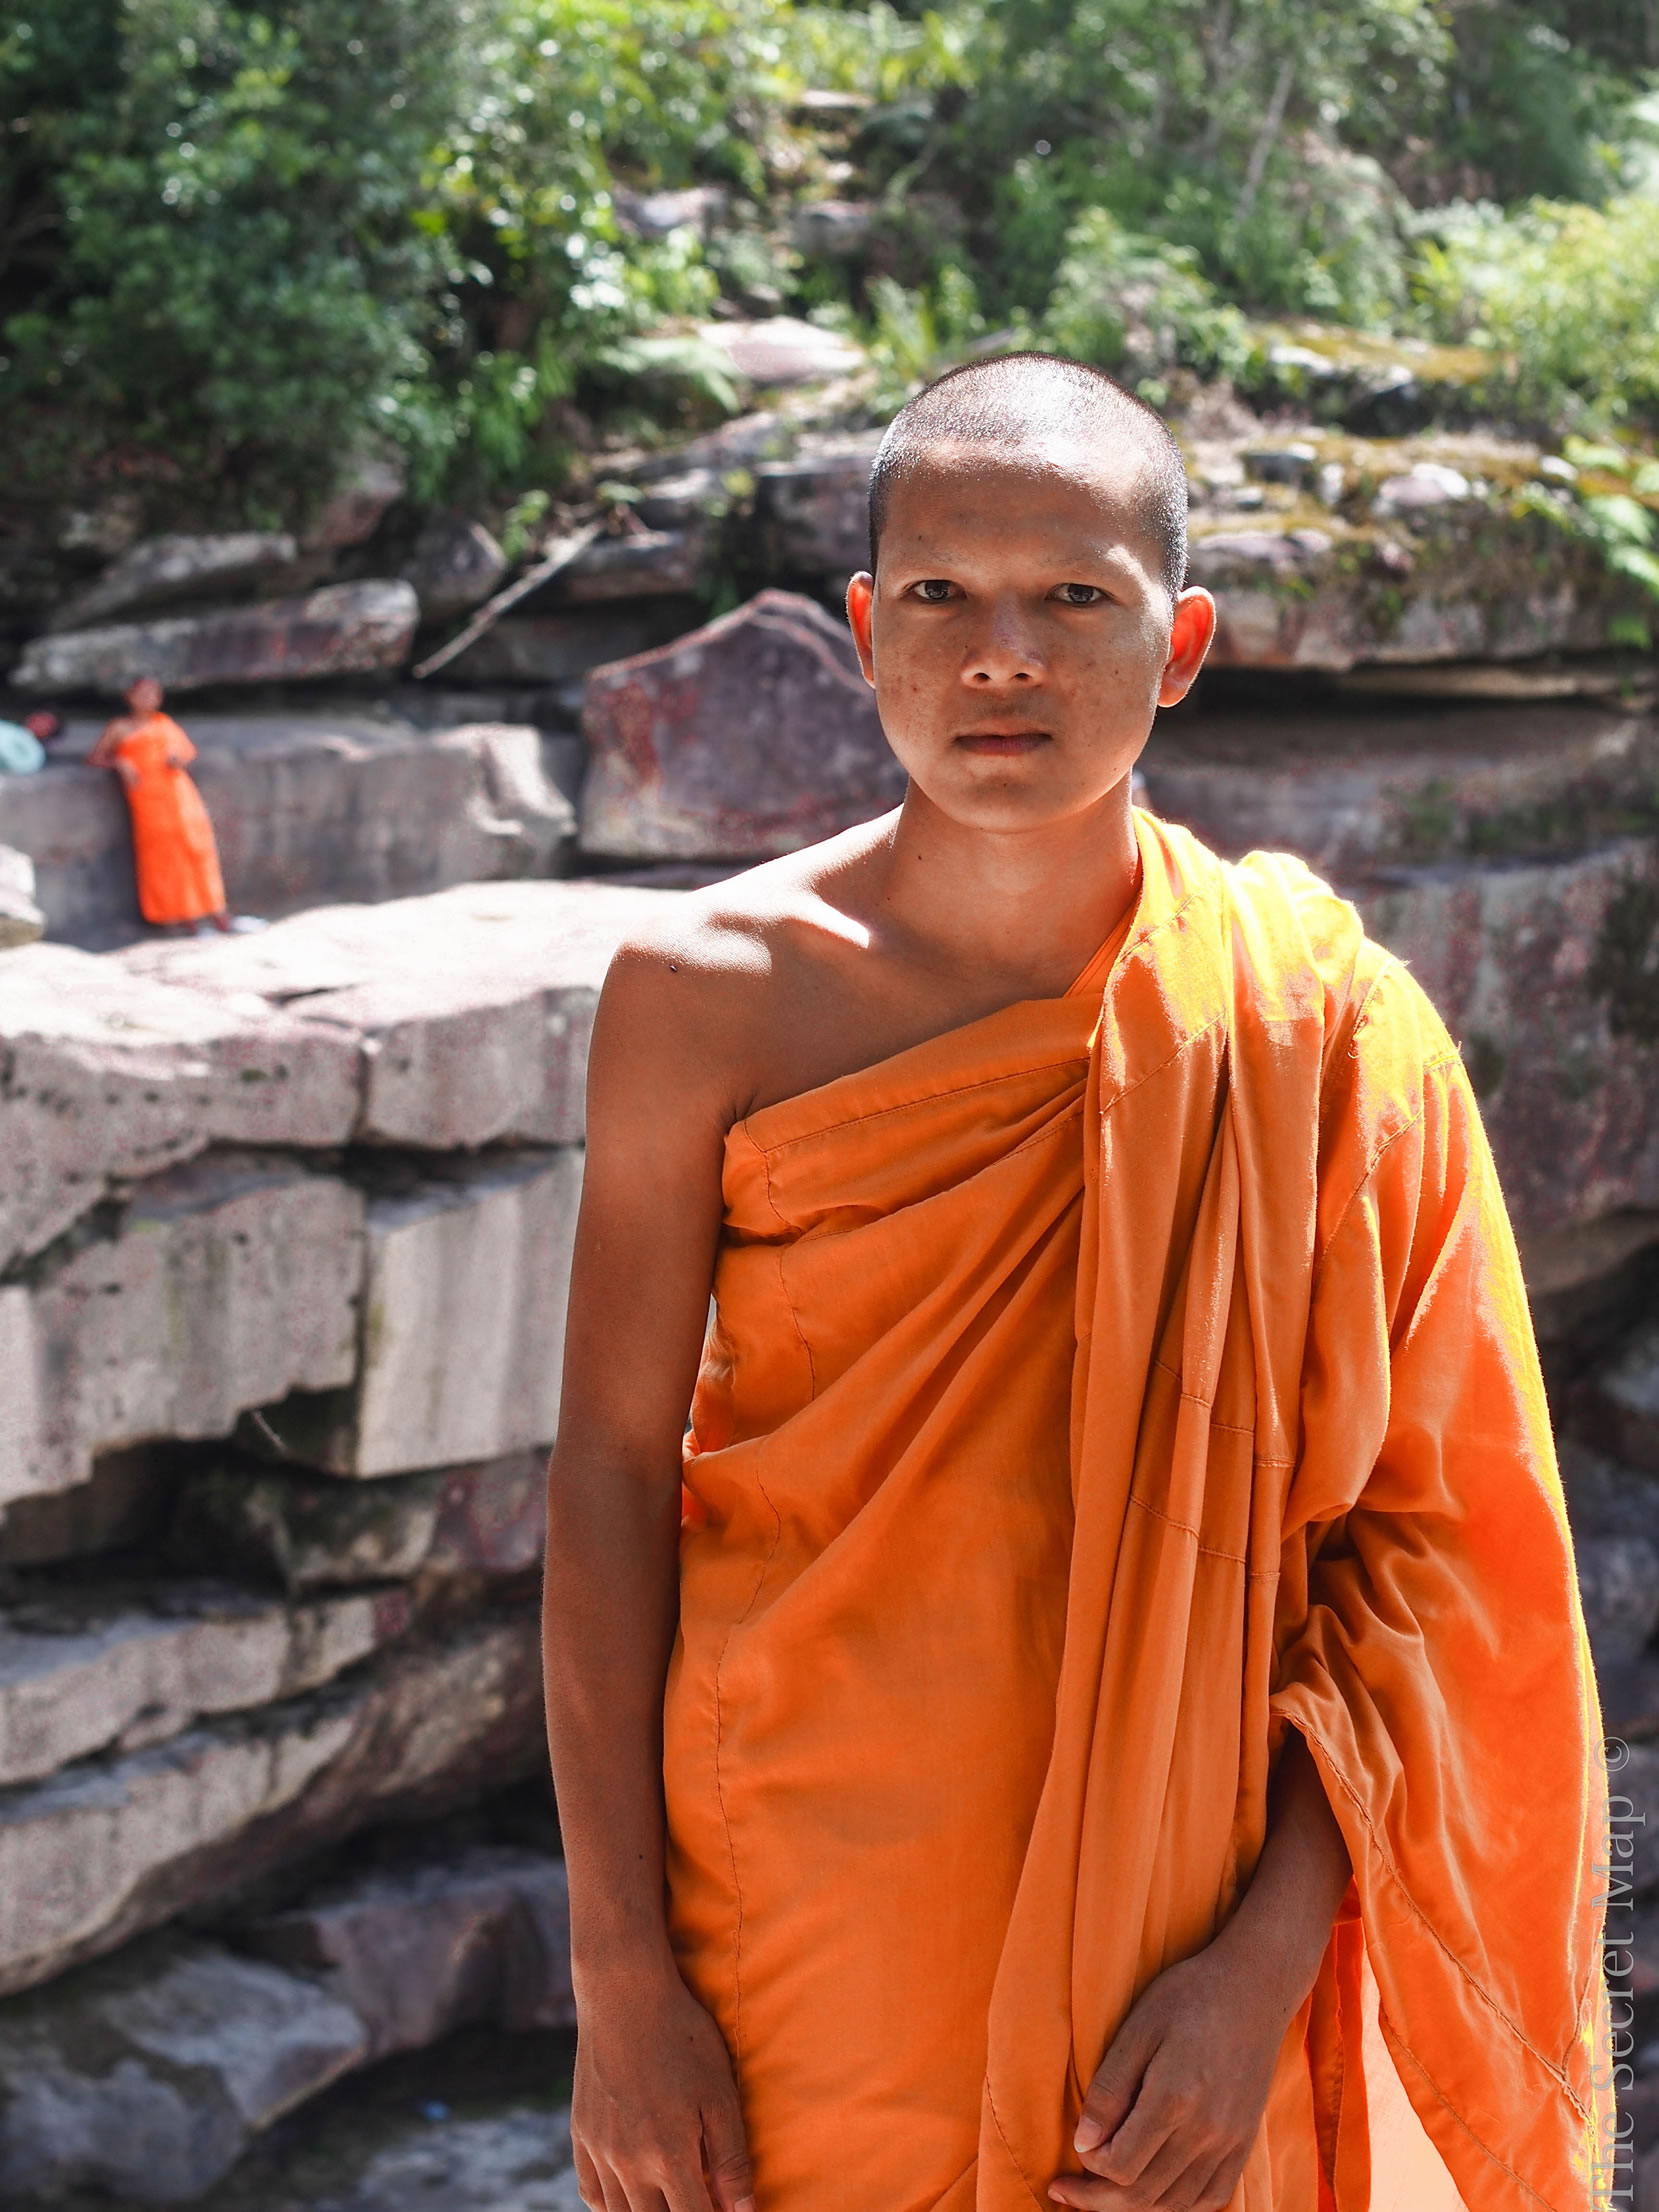 I met this young monk at the peak of Bokor National Park, just above a waterfall.